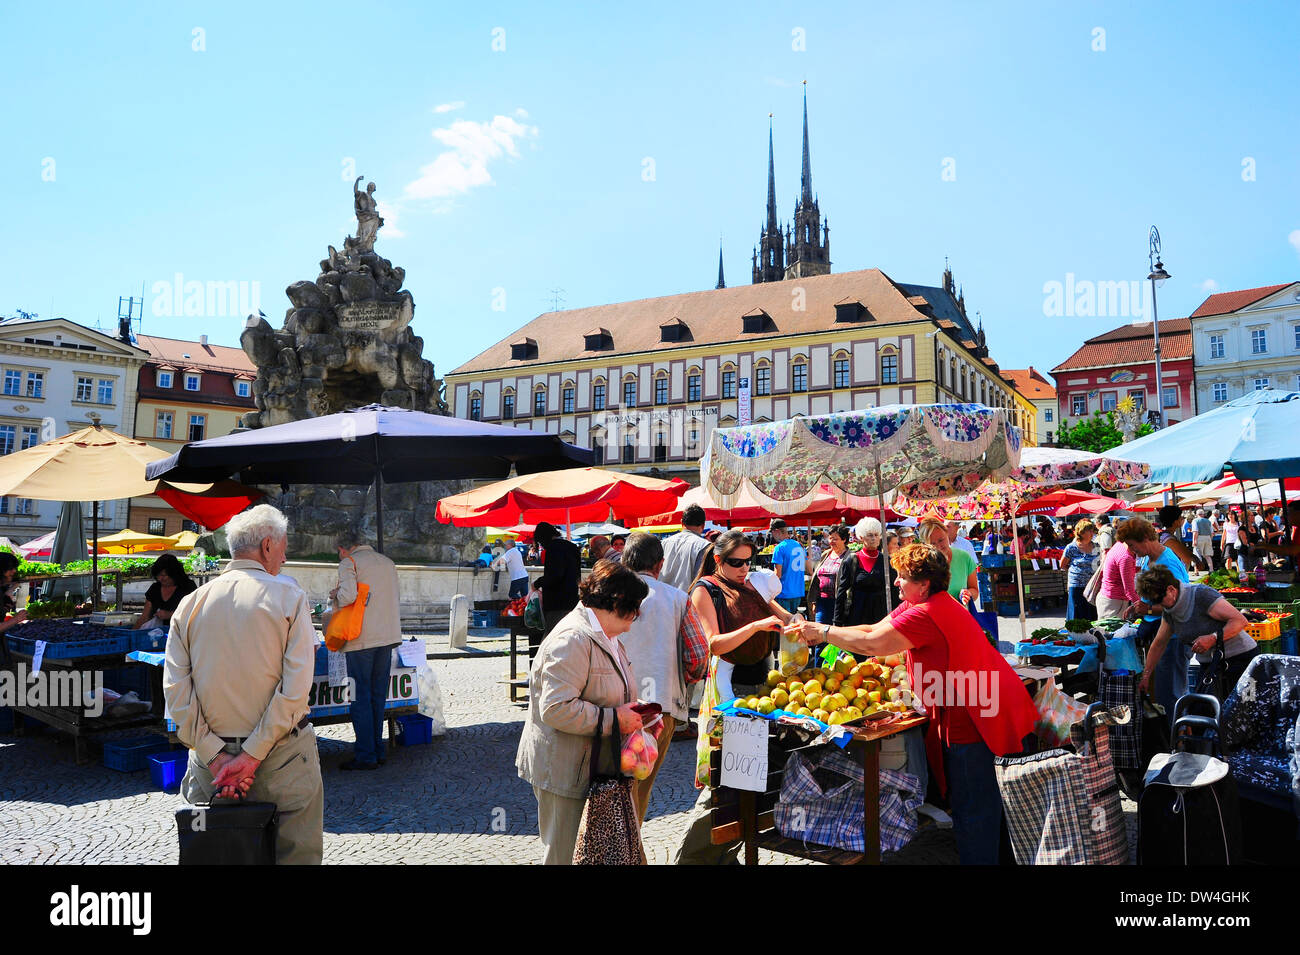 Locals buying vegetables at street food Market in Brno . Brno is the second largest city in the Czech Republic. - Stock Image